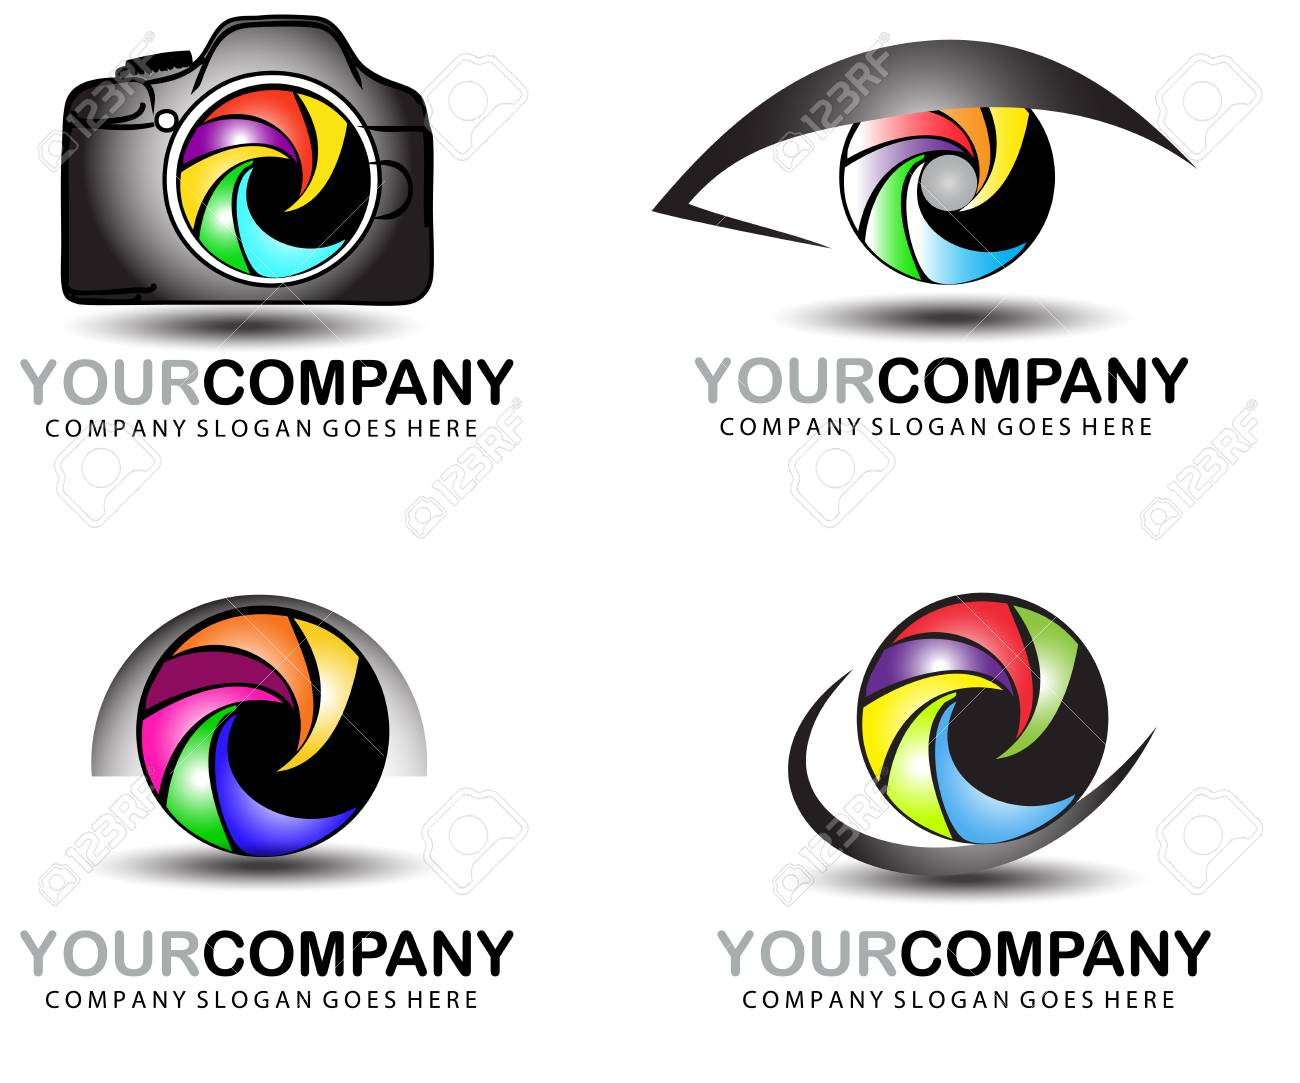 Camera Logo Set Photography Logo Design Royalty Free Cliparts Vectors And Stock Illustration Image 62178114